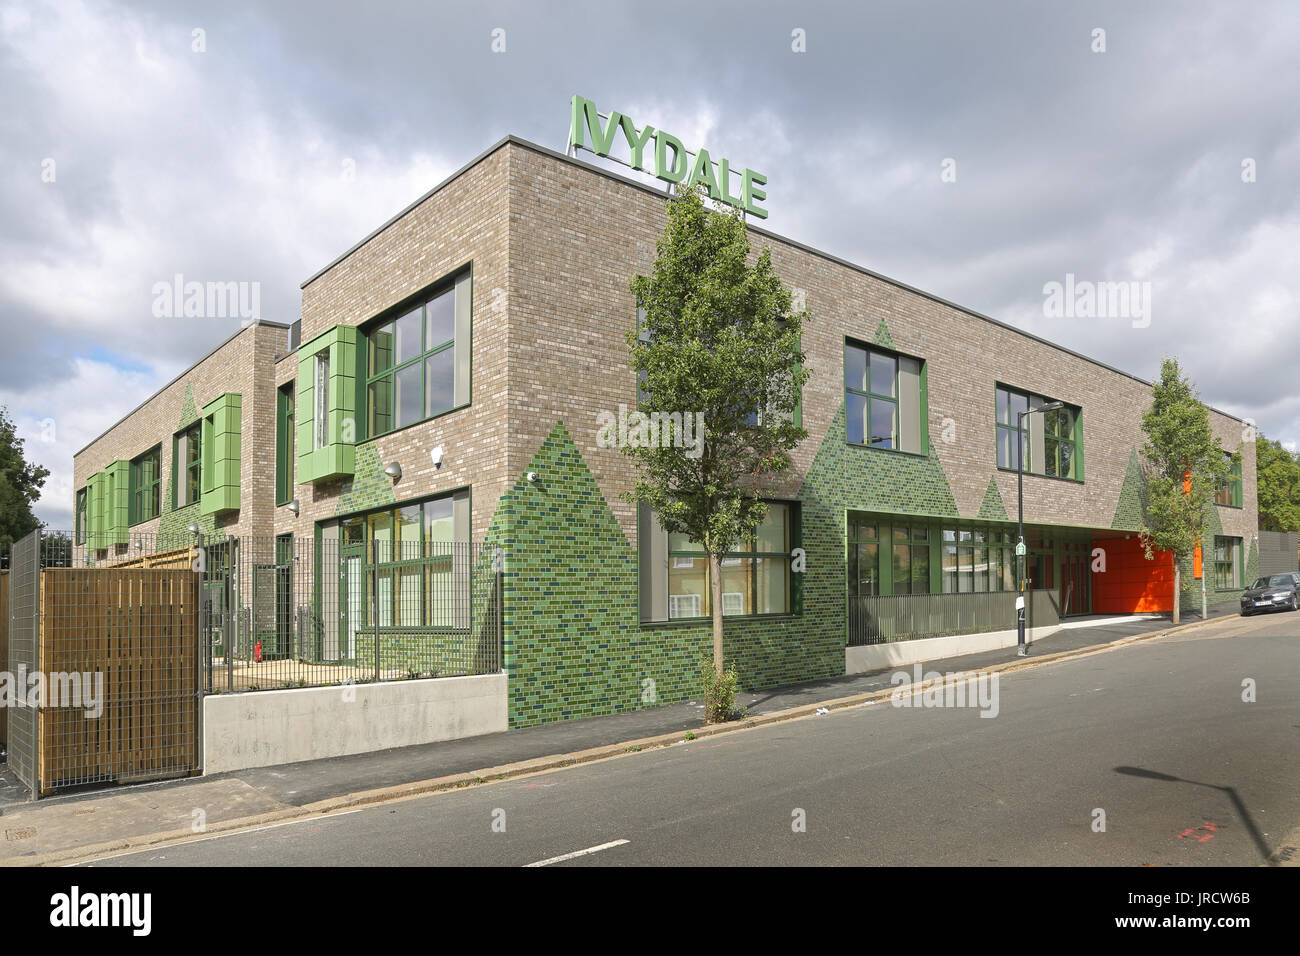 Exterior view of the newly completed Ivydale Primary School in Nunhead, southeast London, UK.Grey brick with large triangles of glazed green bricks. - Stock Image